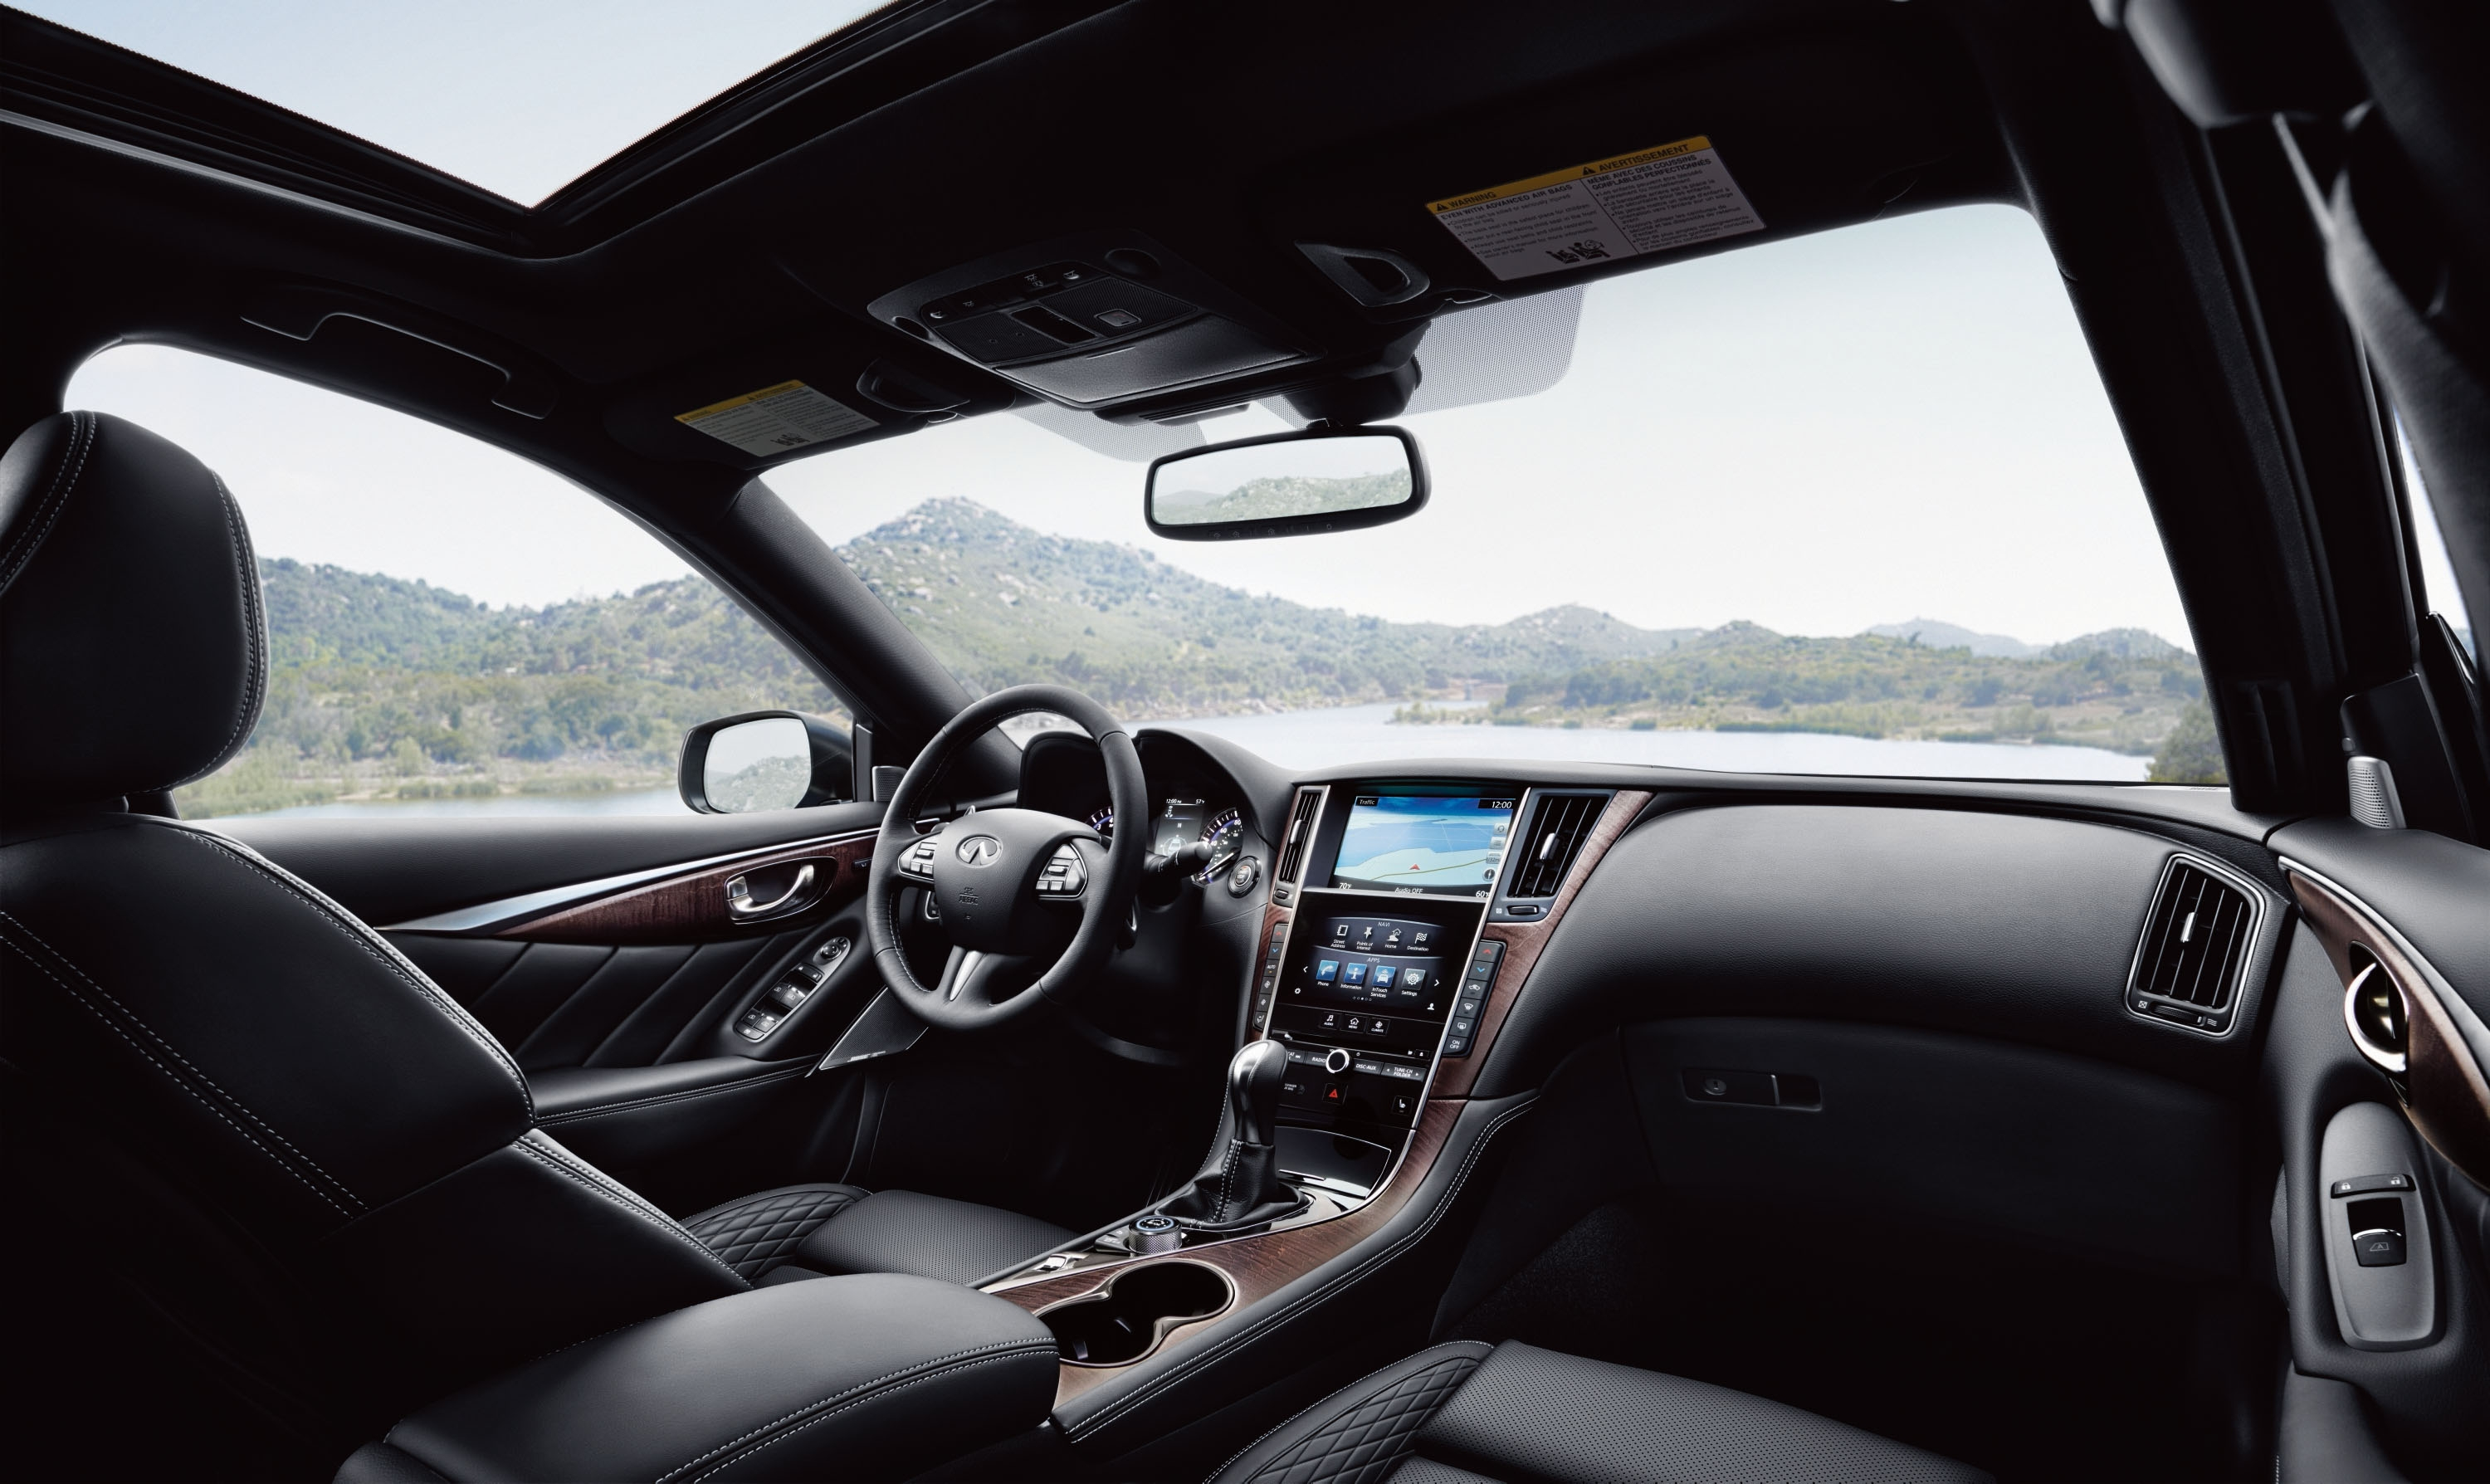 Inside, though, the Q50's space is far smaller than the Q70, but it matches the larger model for beauty and comfort – well, except for rear legroom.